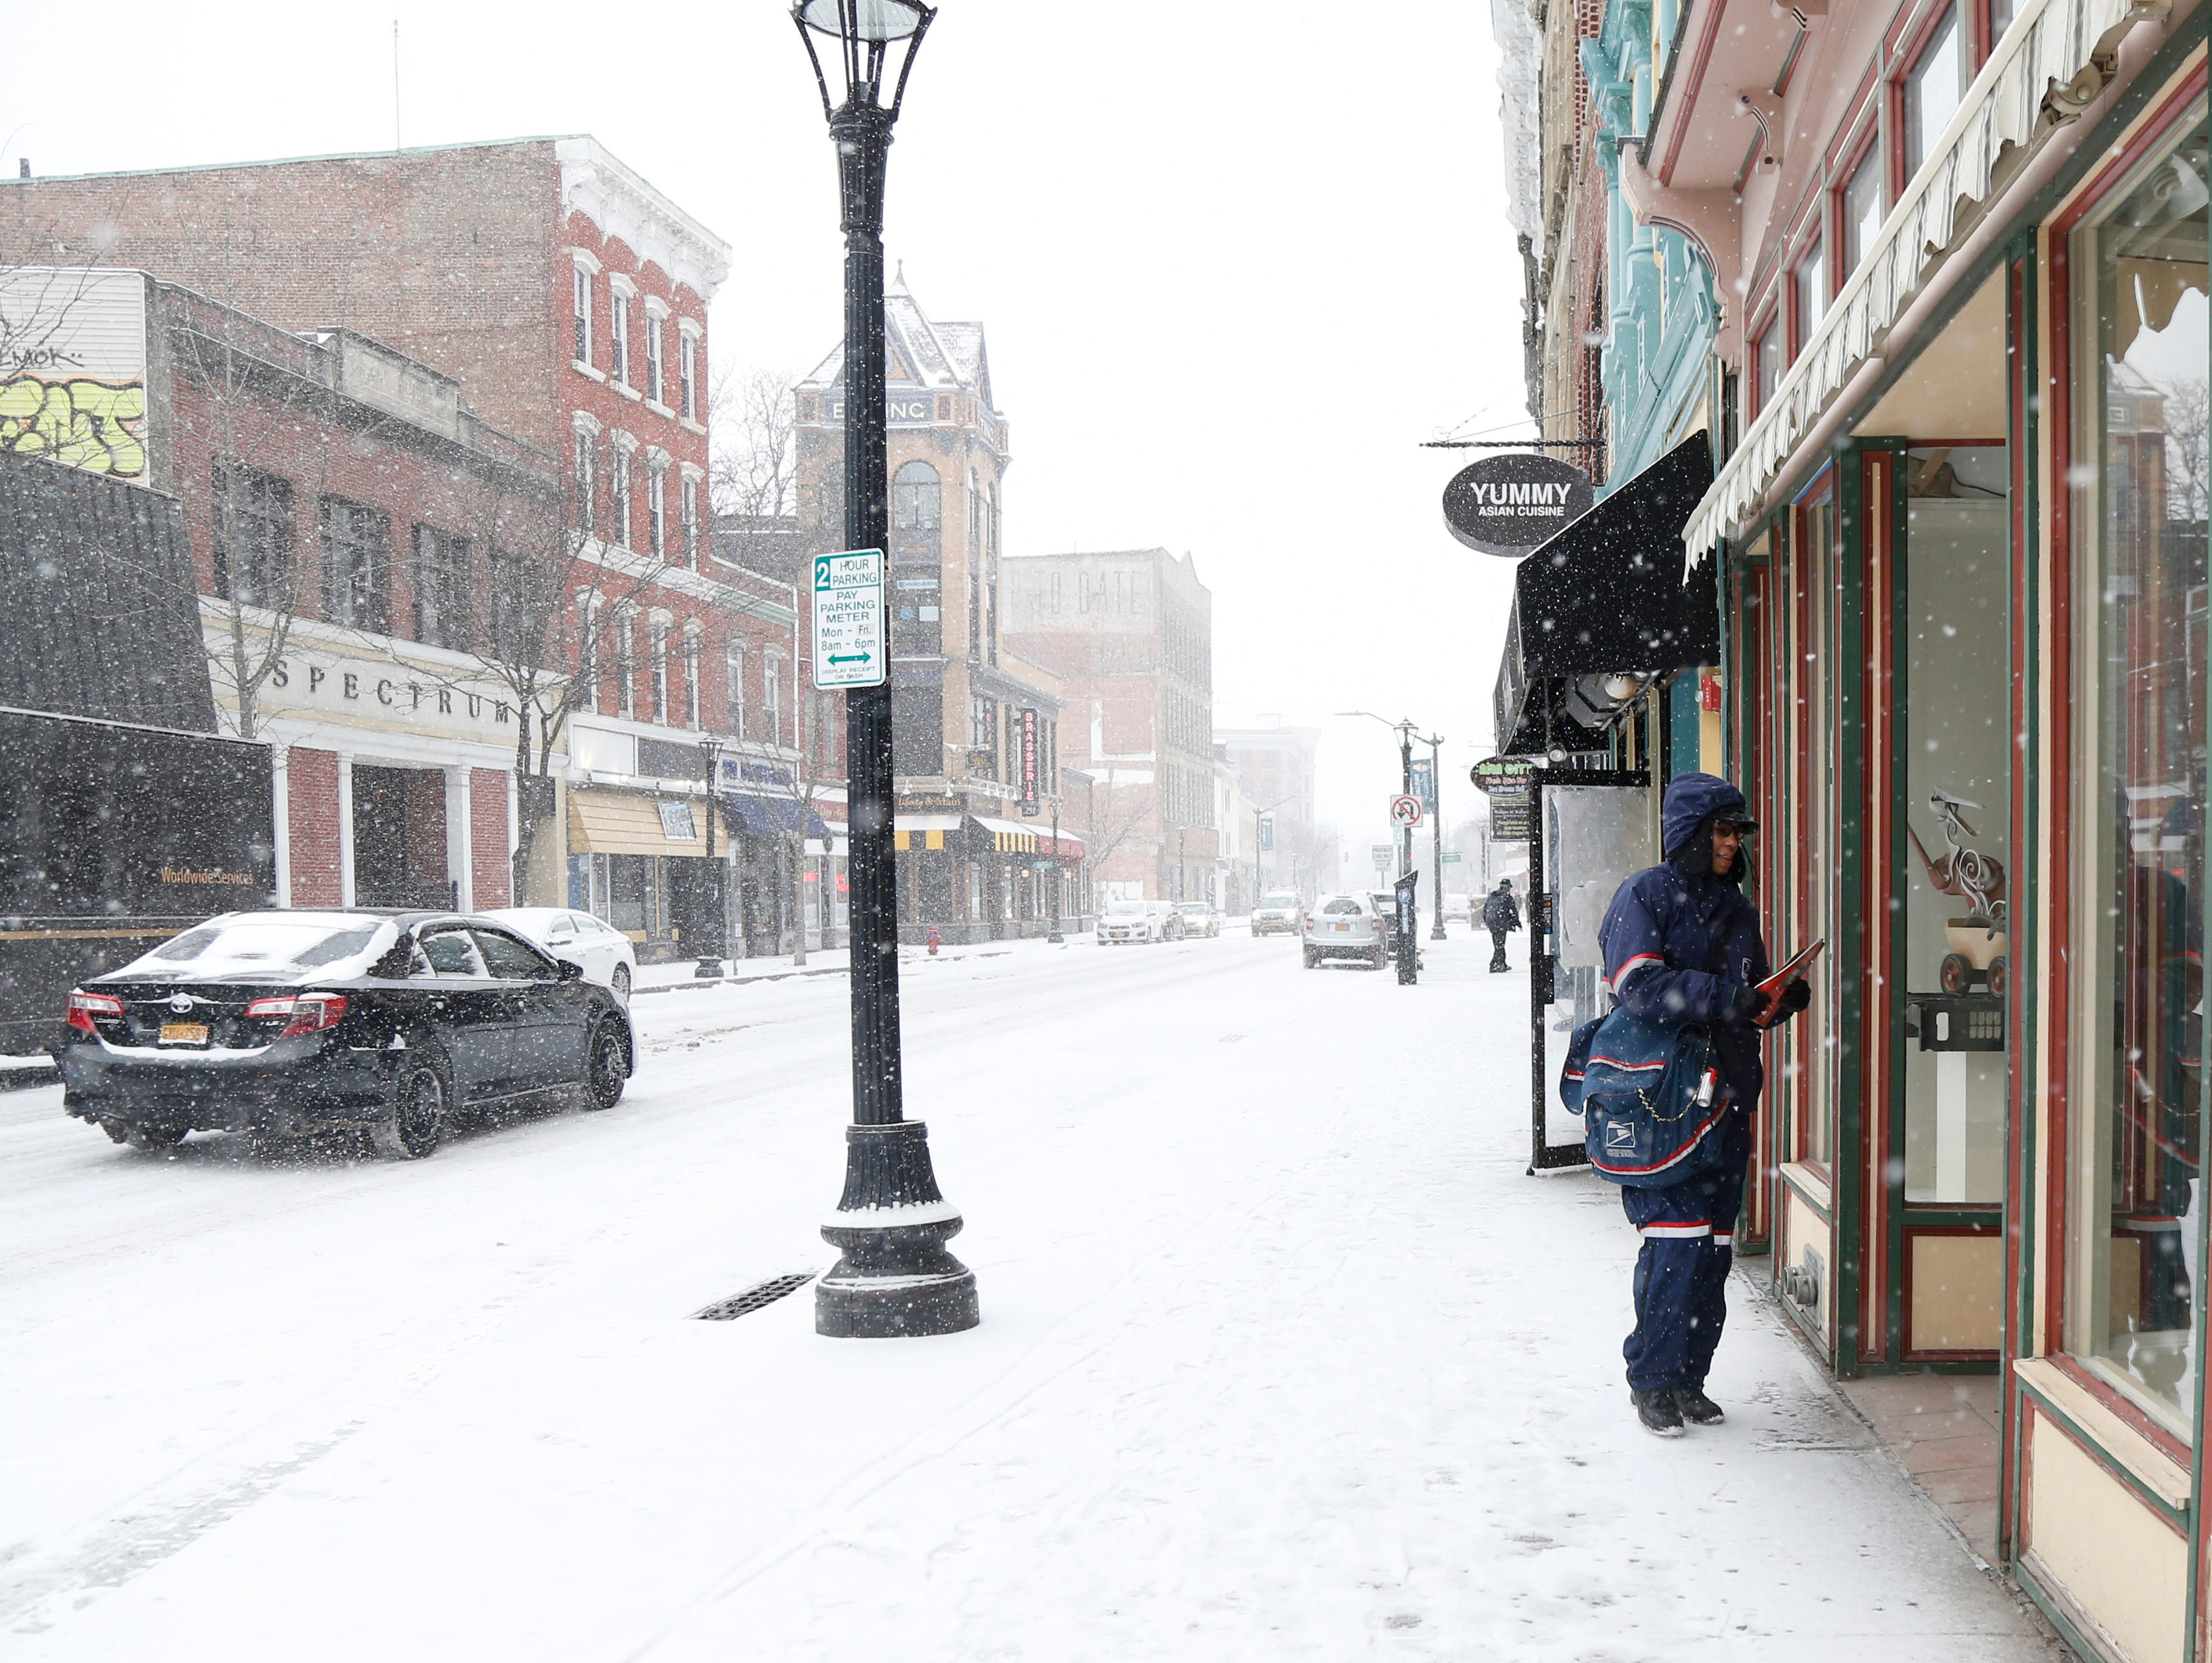 USPS Letter Carrier Lisa Andino delivers mail on Main Street in the City of Poughkeepsie on February 12, 2019.